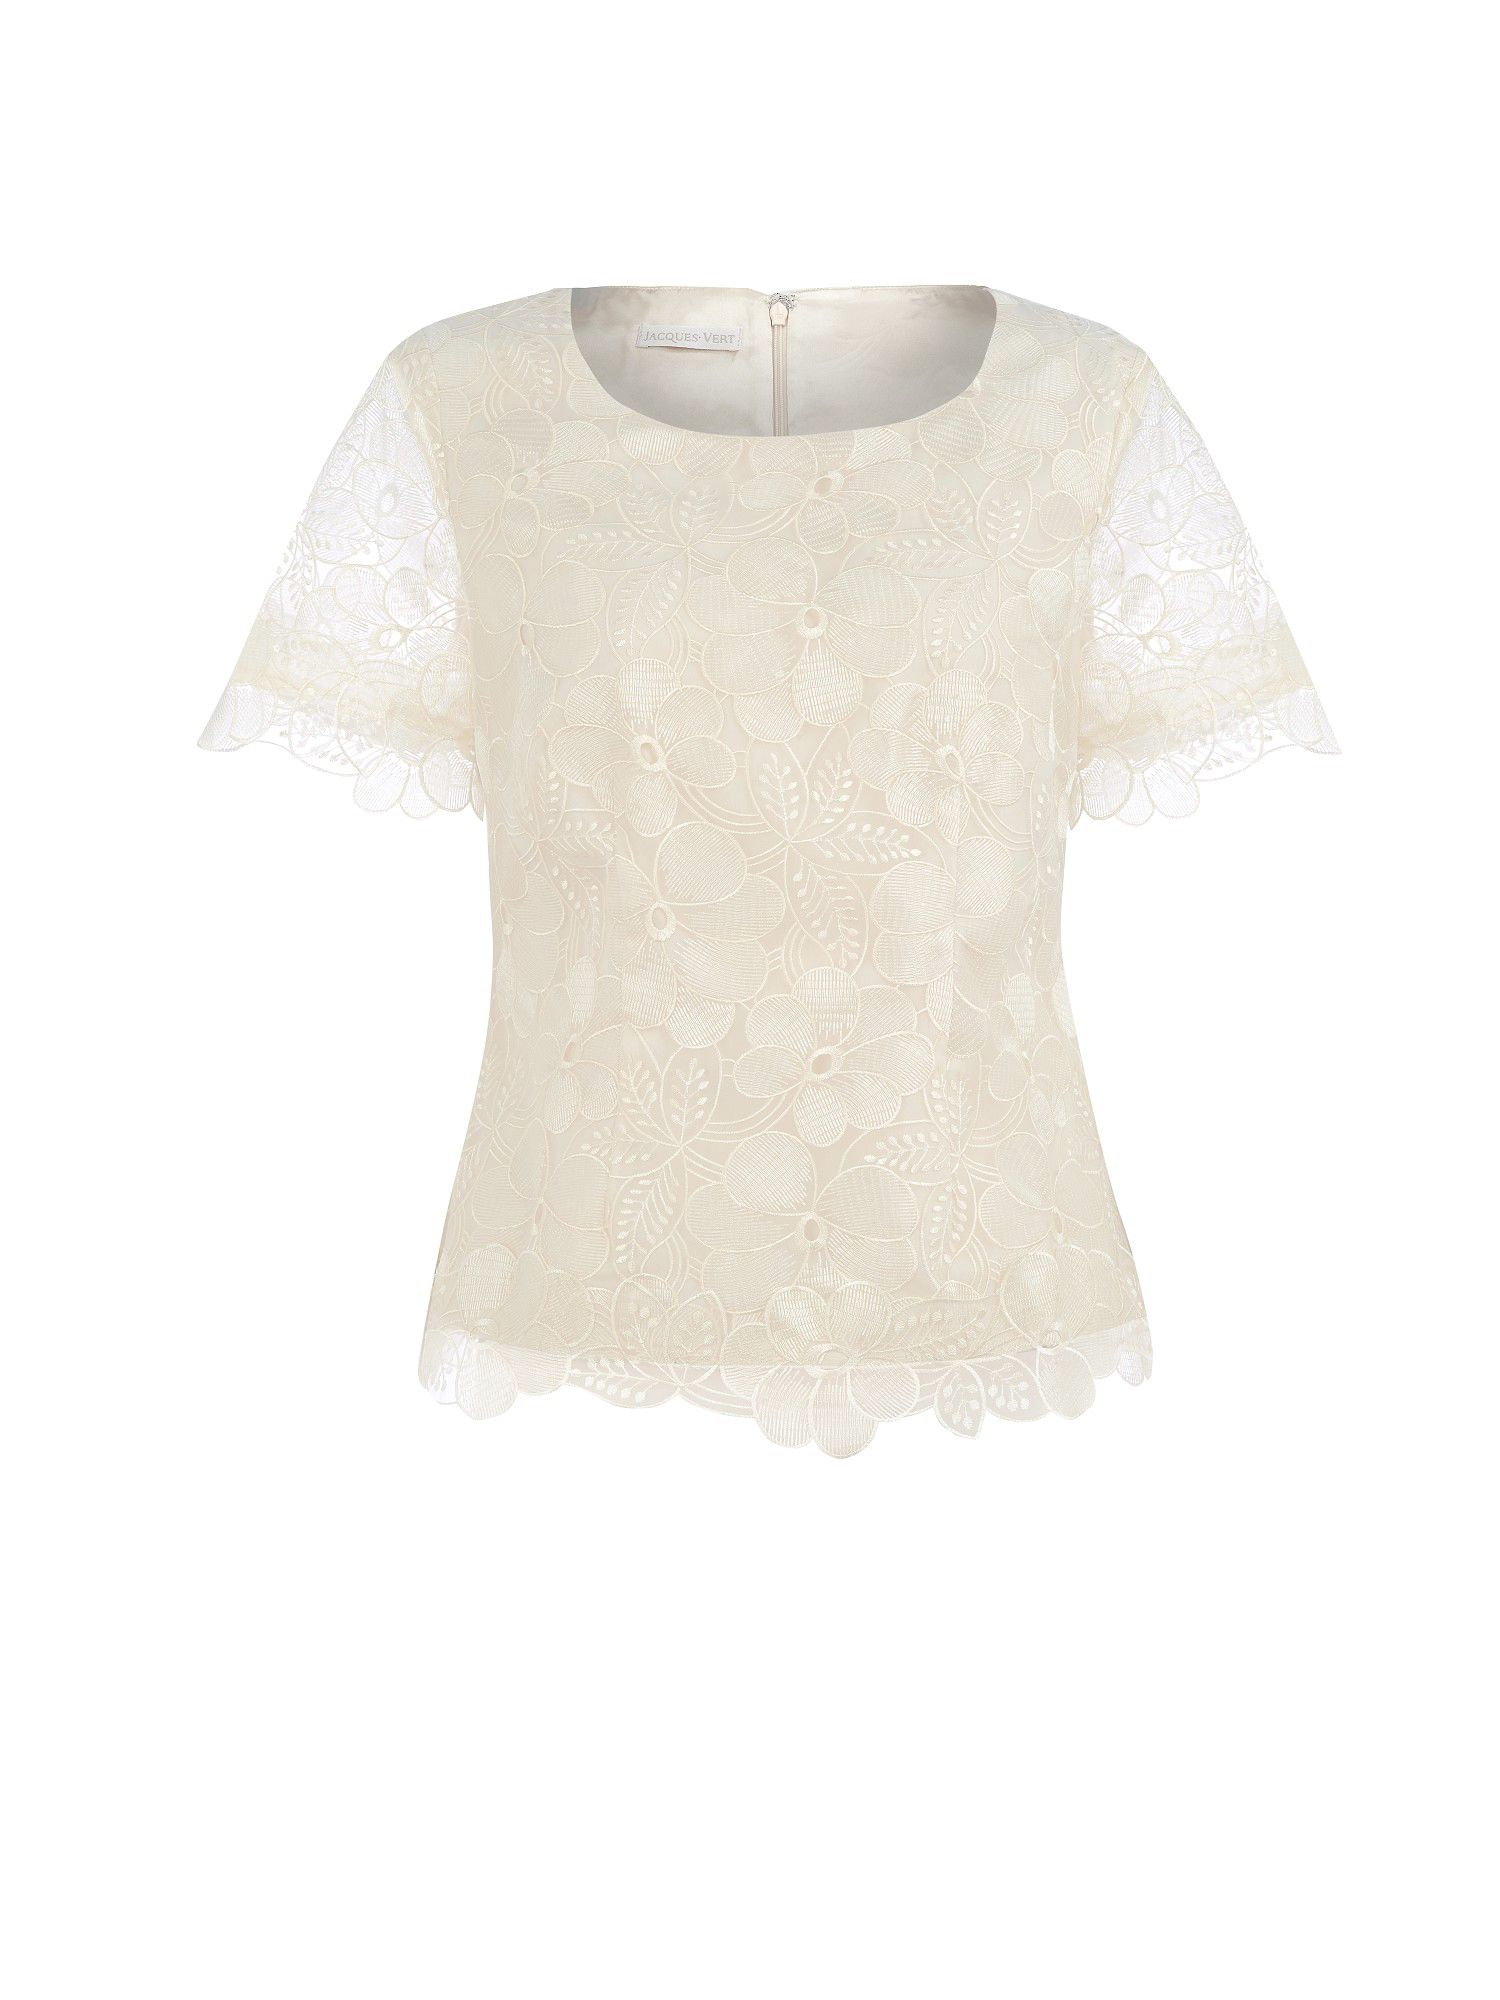 Cream organza floral blouse